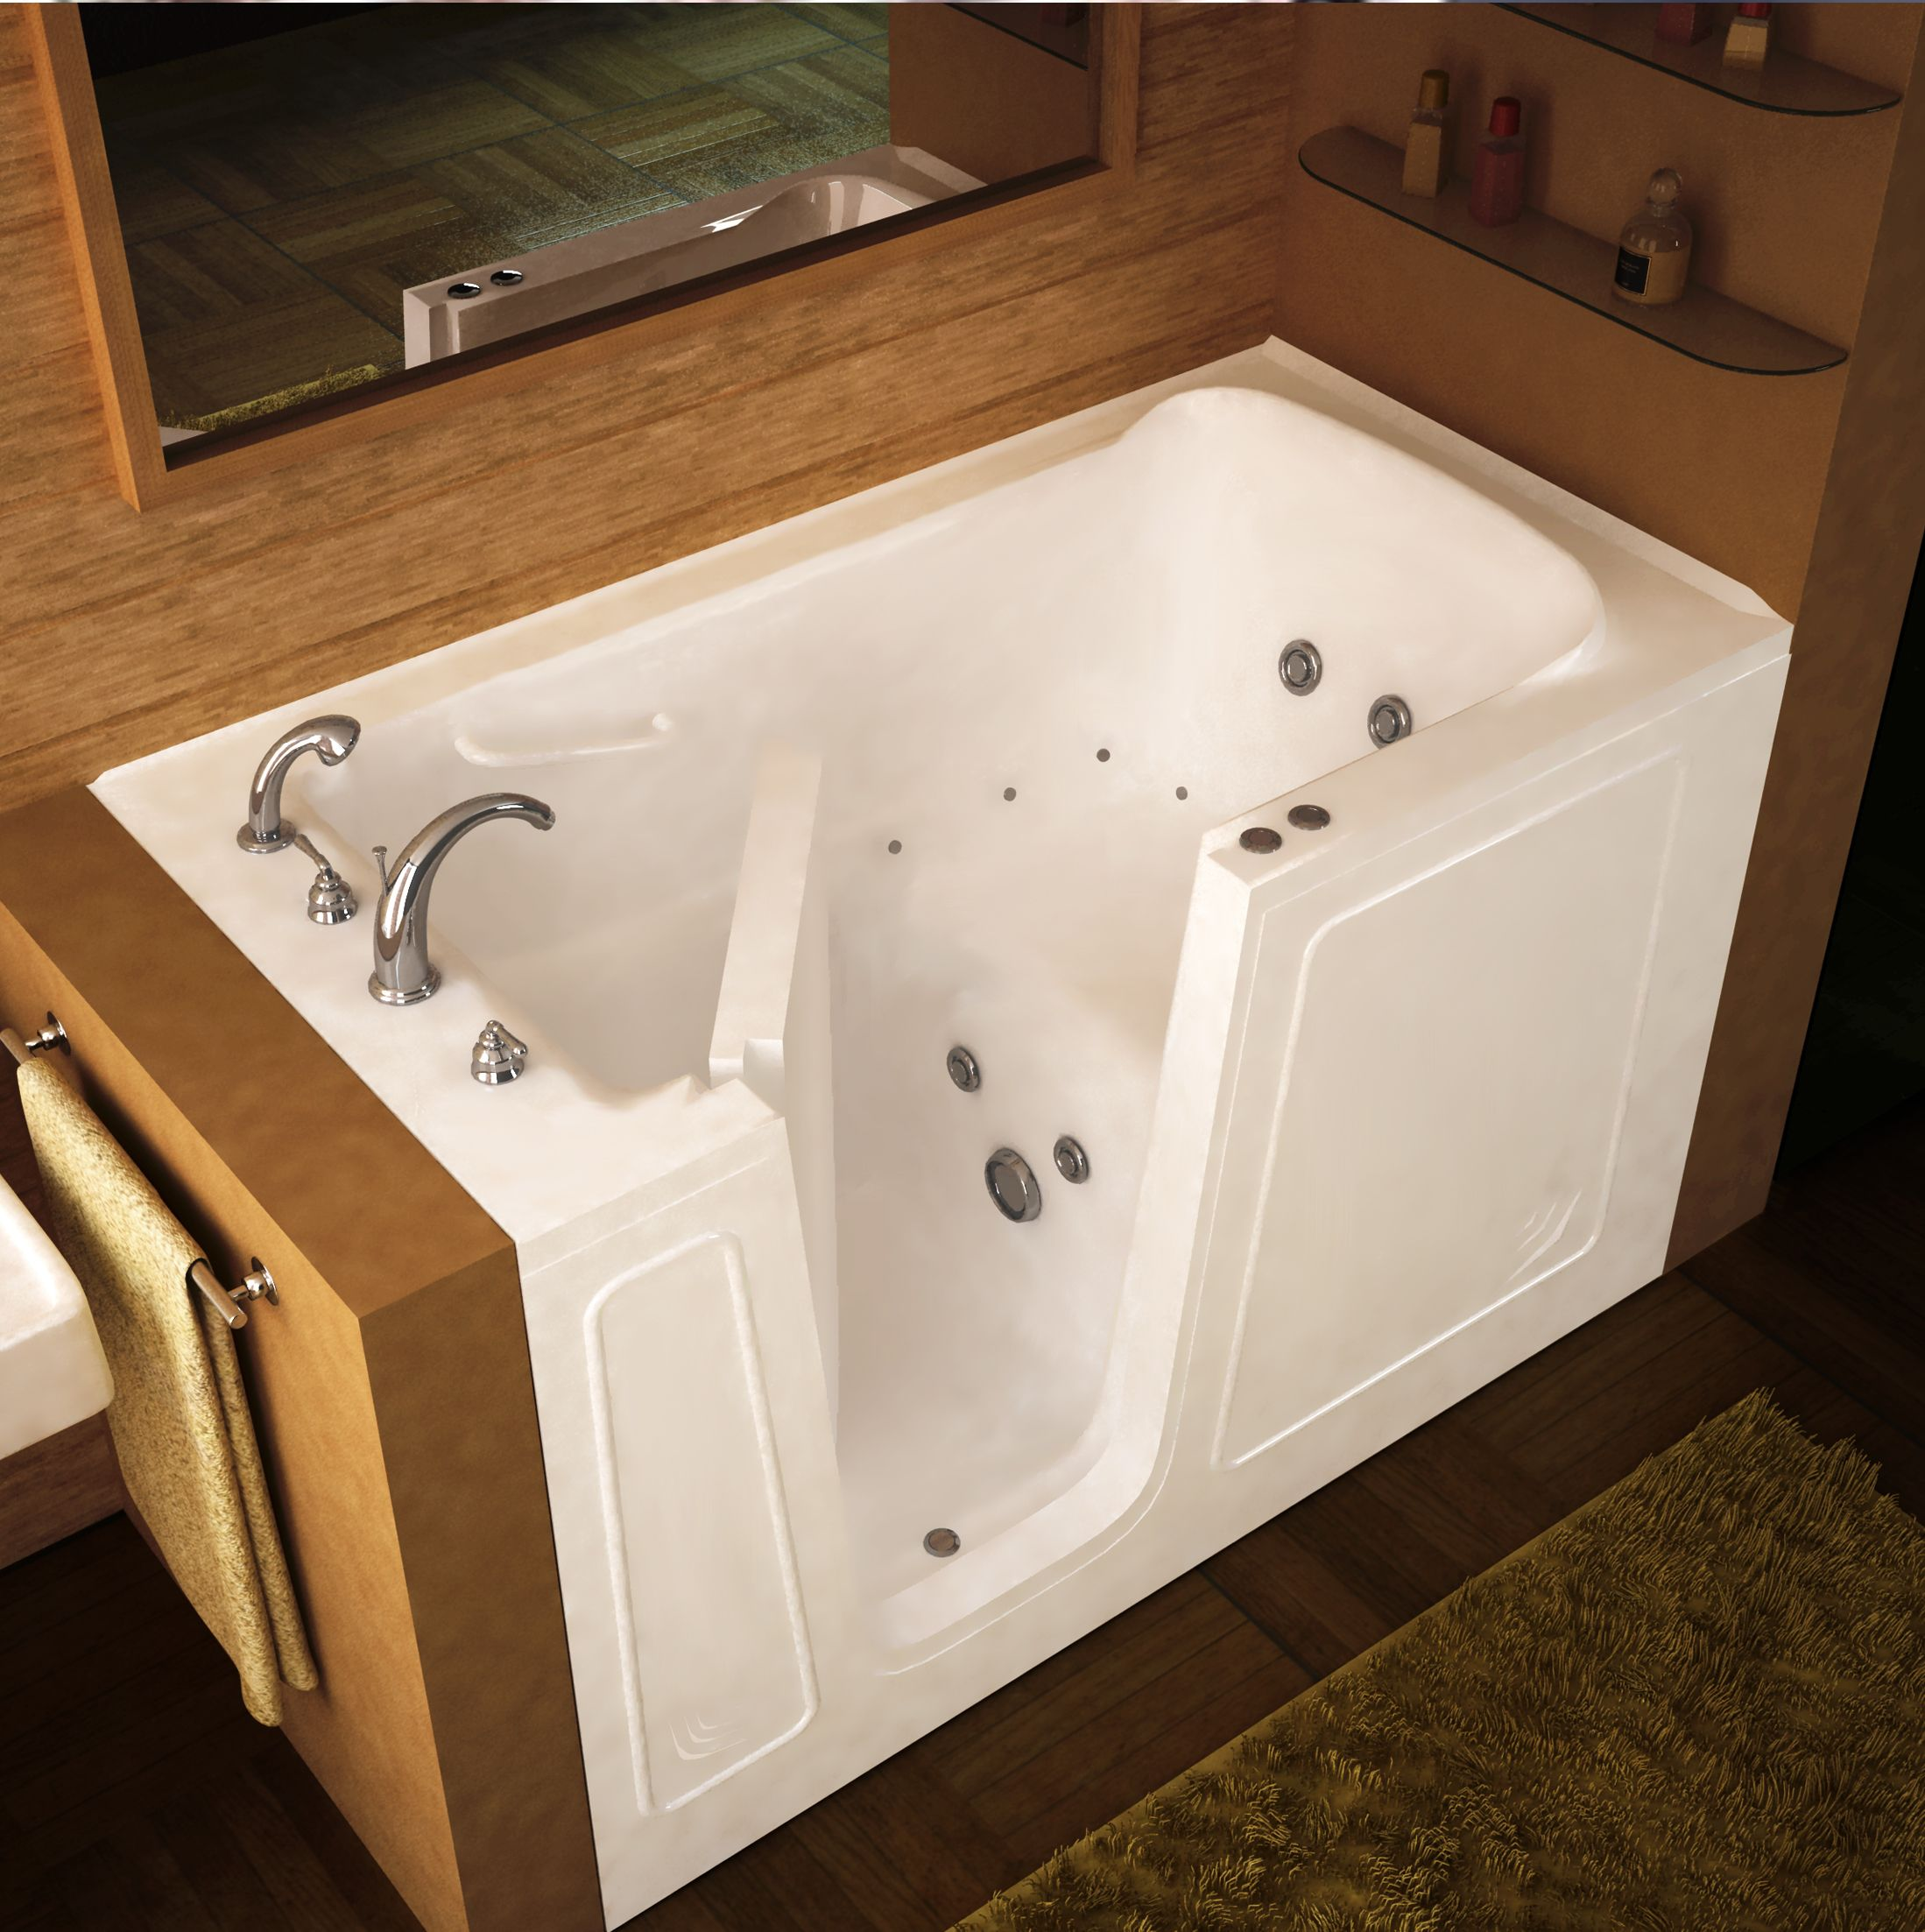 Best Deal Walk In Bathtubs Prices | Best Walk In Tubs Prices | MS ...